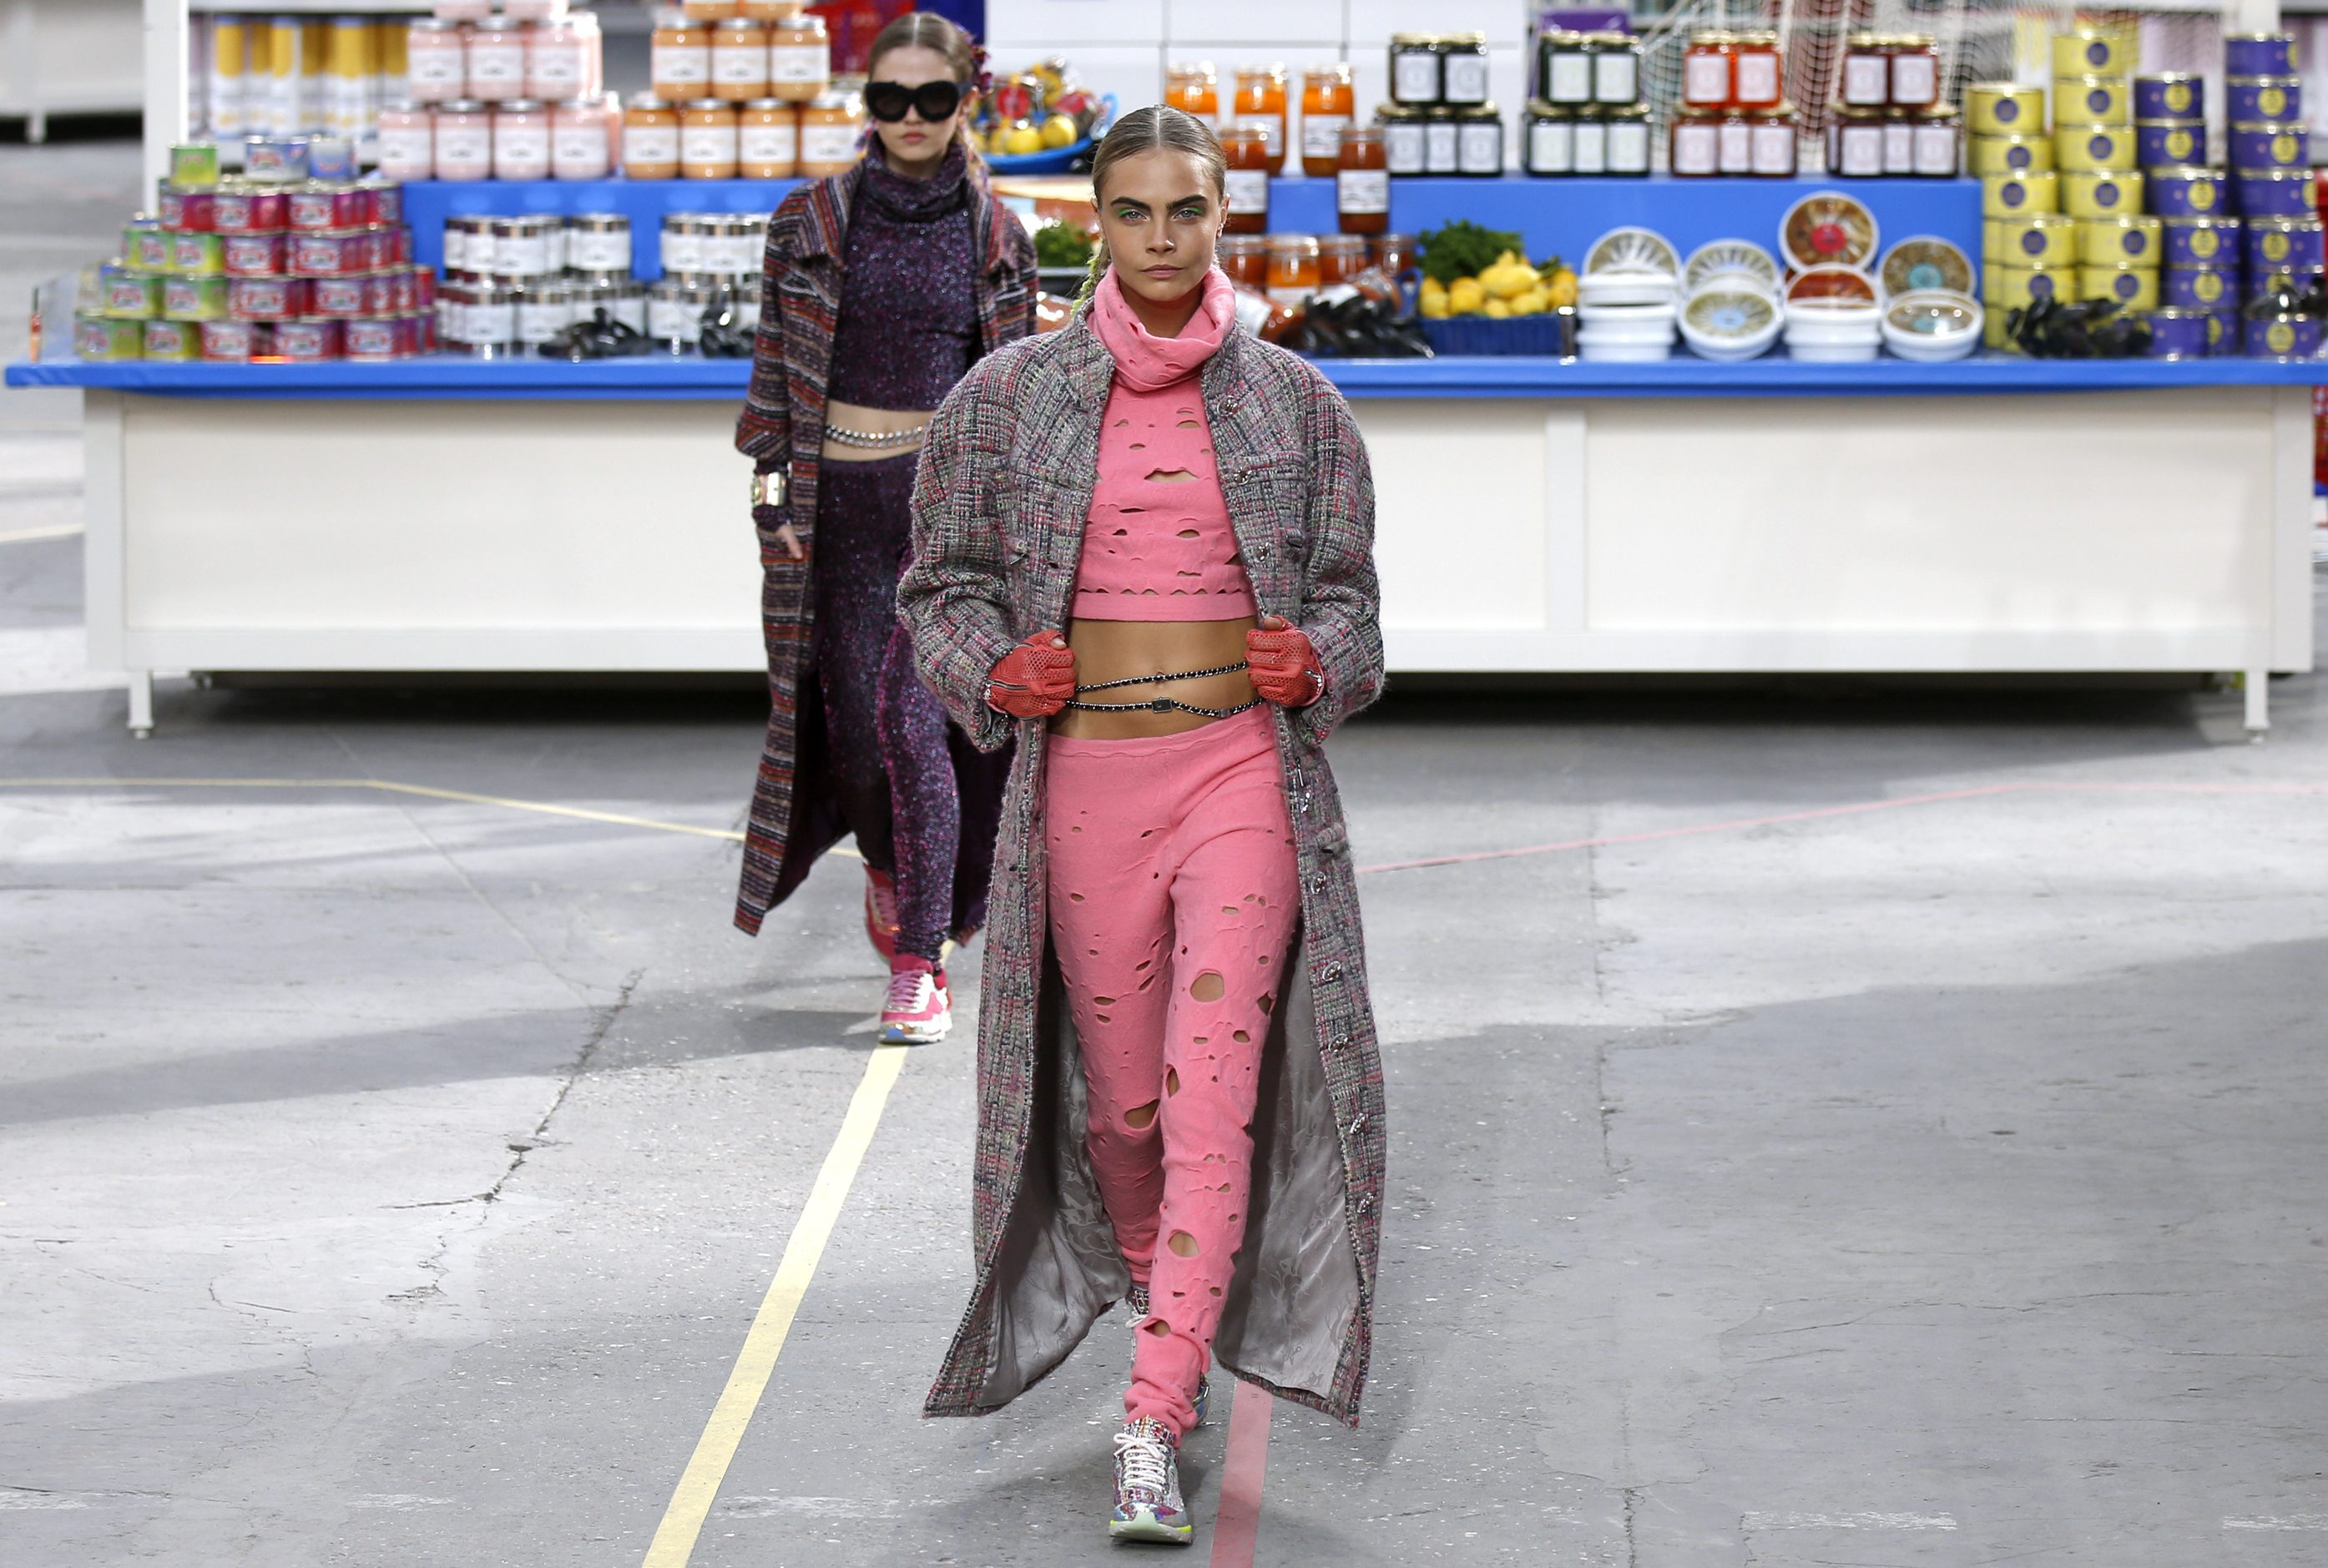 """Model Cara Delevingne presents a creation by German designer Karl Lagerfeld as part of his Fall/Winter 2014-2015 women's ready-to-wear collection for French fashion house Chanel at the Grand Palais transformed into a """"Chanel Shopping Center"""" during Paris Fashion Week March 4, 2014."""